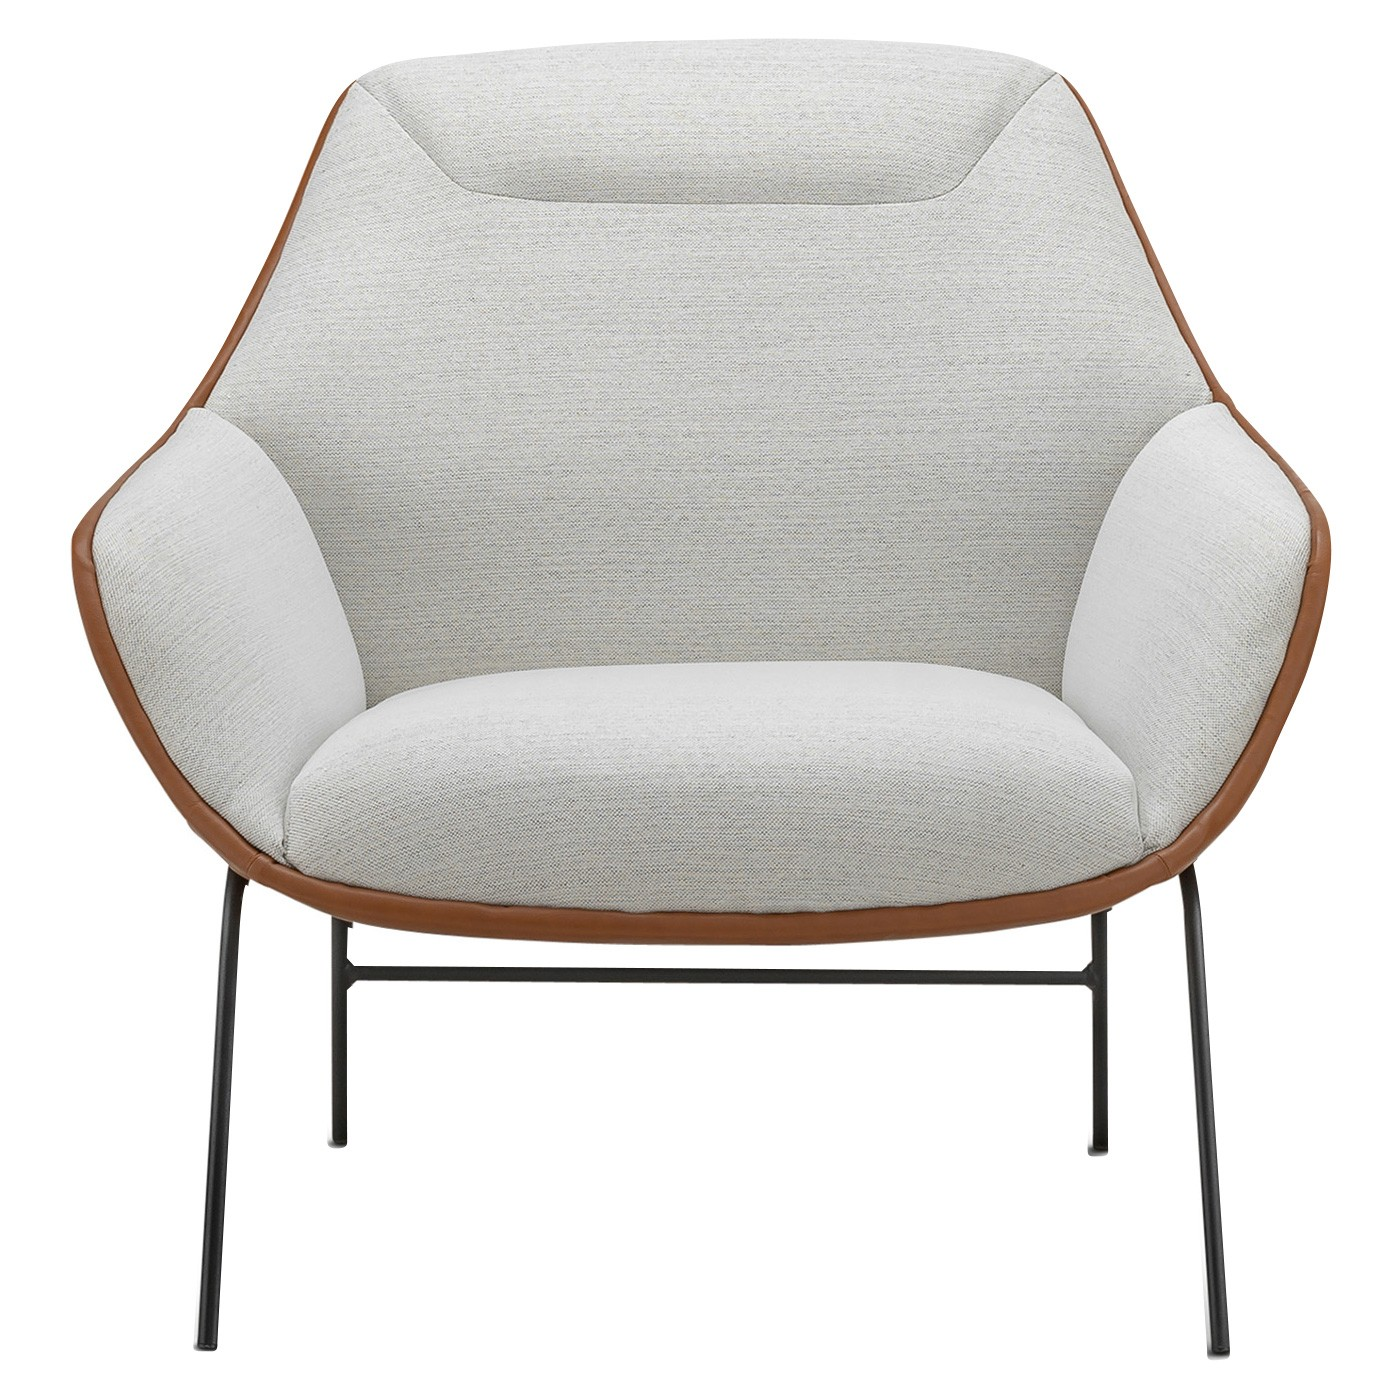 Mii Fabric & Vegan Leather Occasional Lounge Armchair, Dove White / Tan